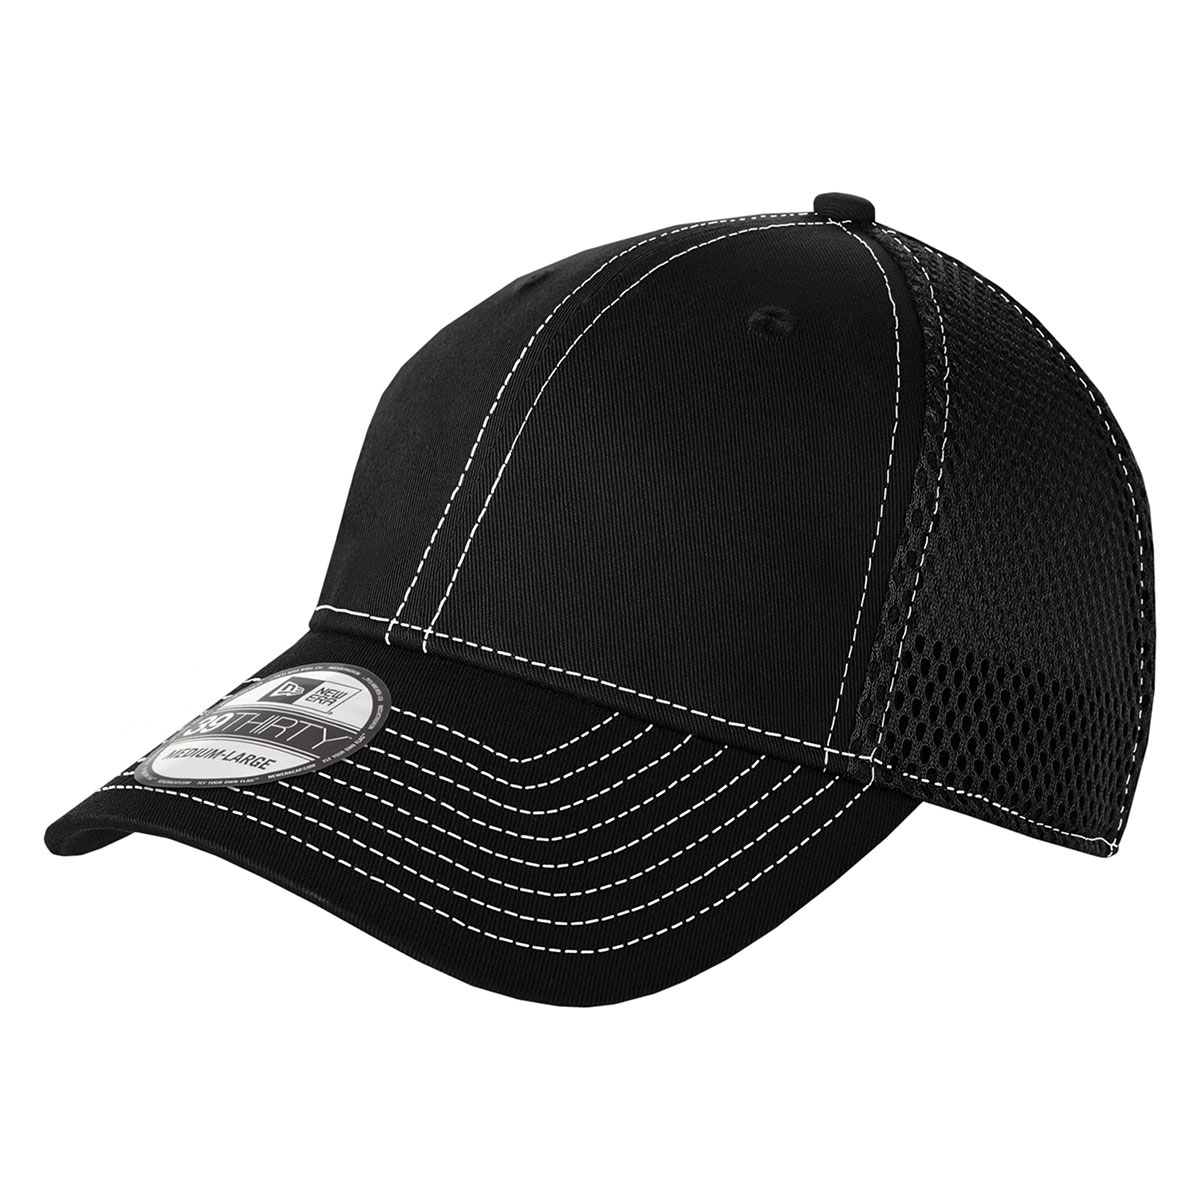 Black/White New Era® Stretch Mesh Contrast Stitch Cap